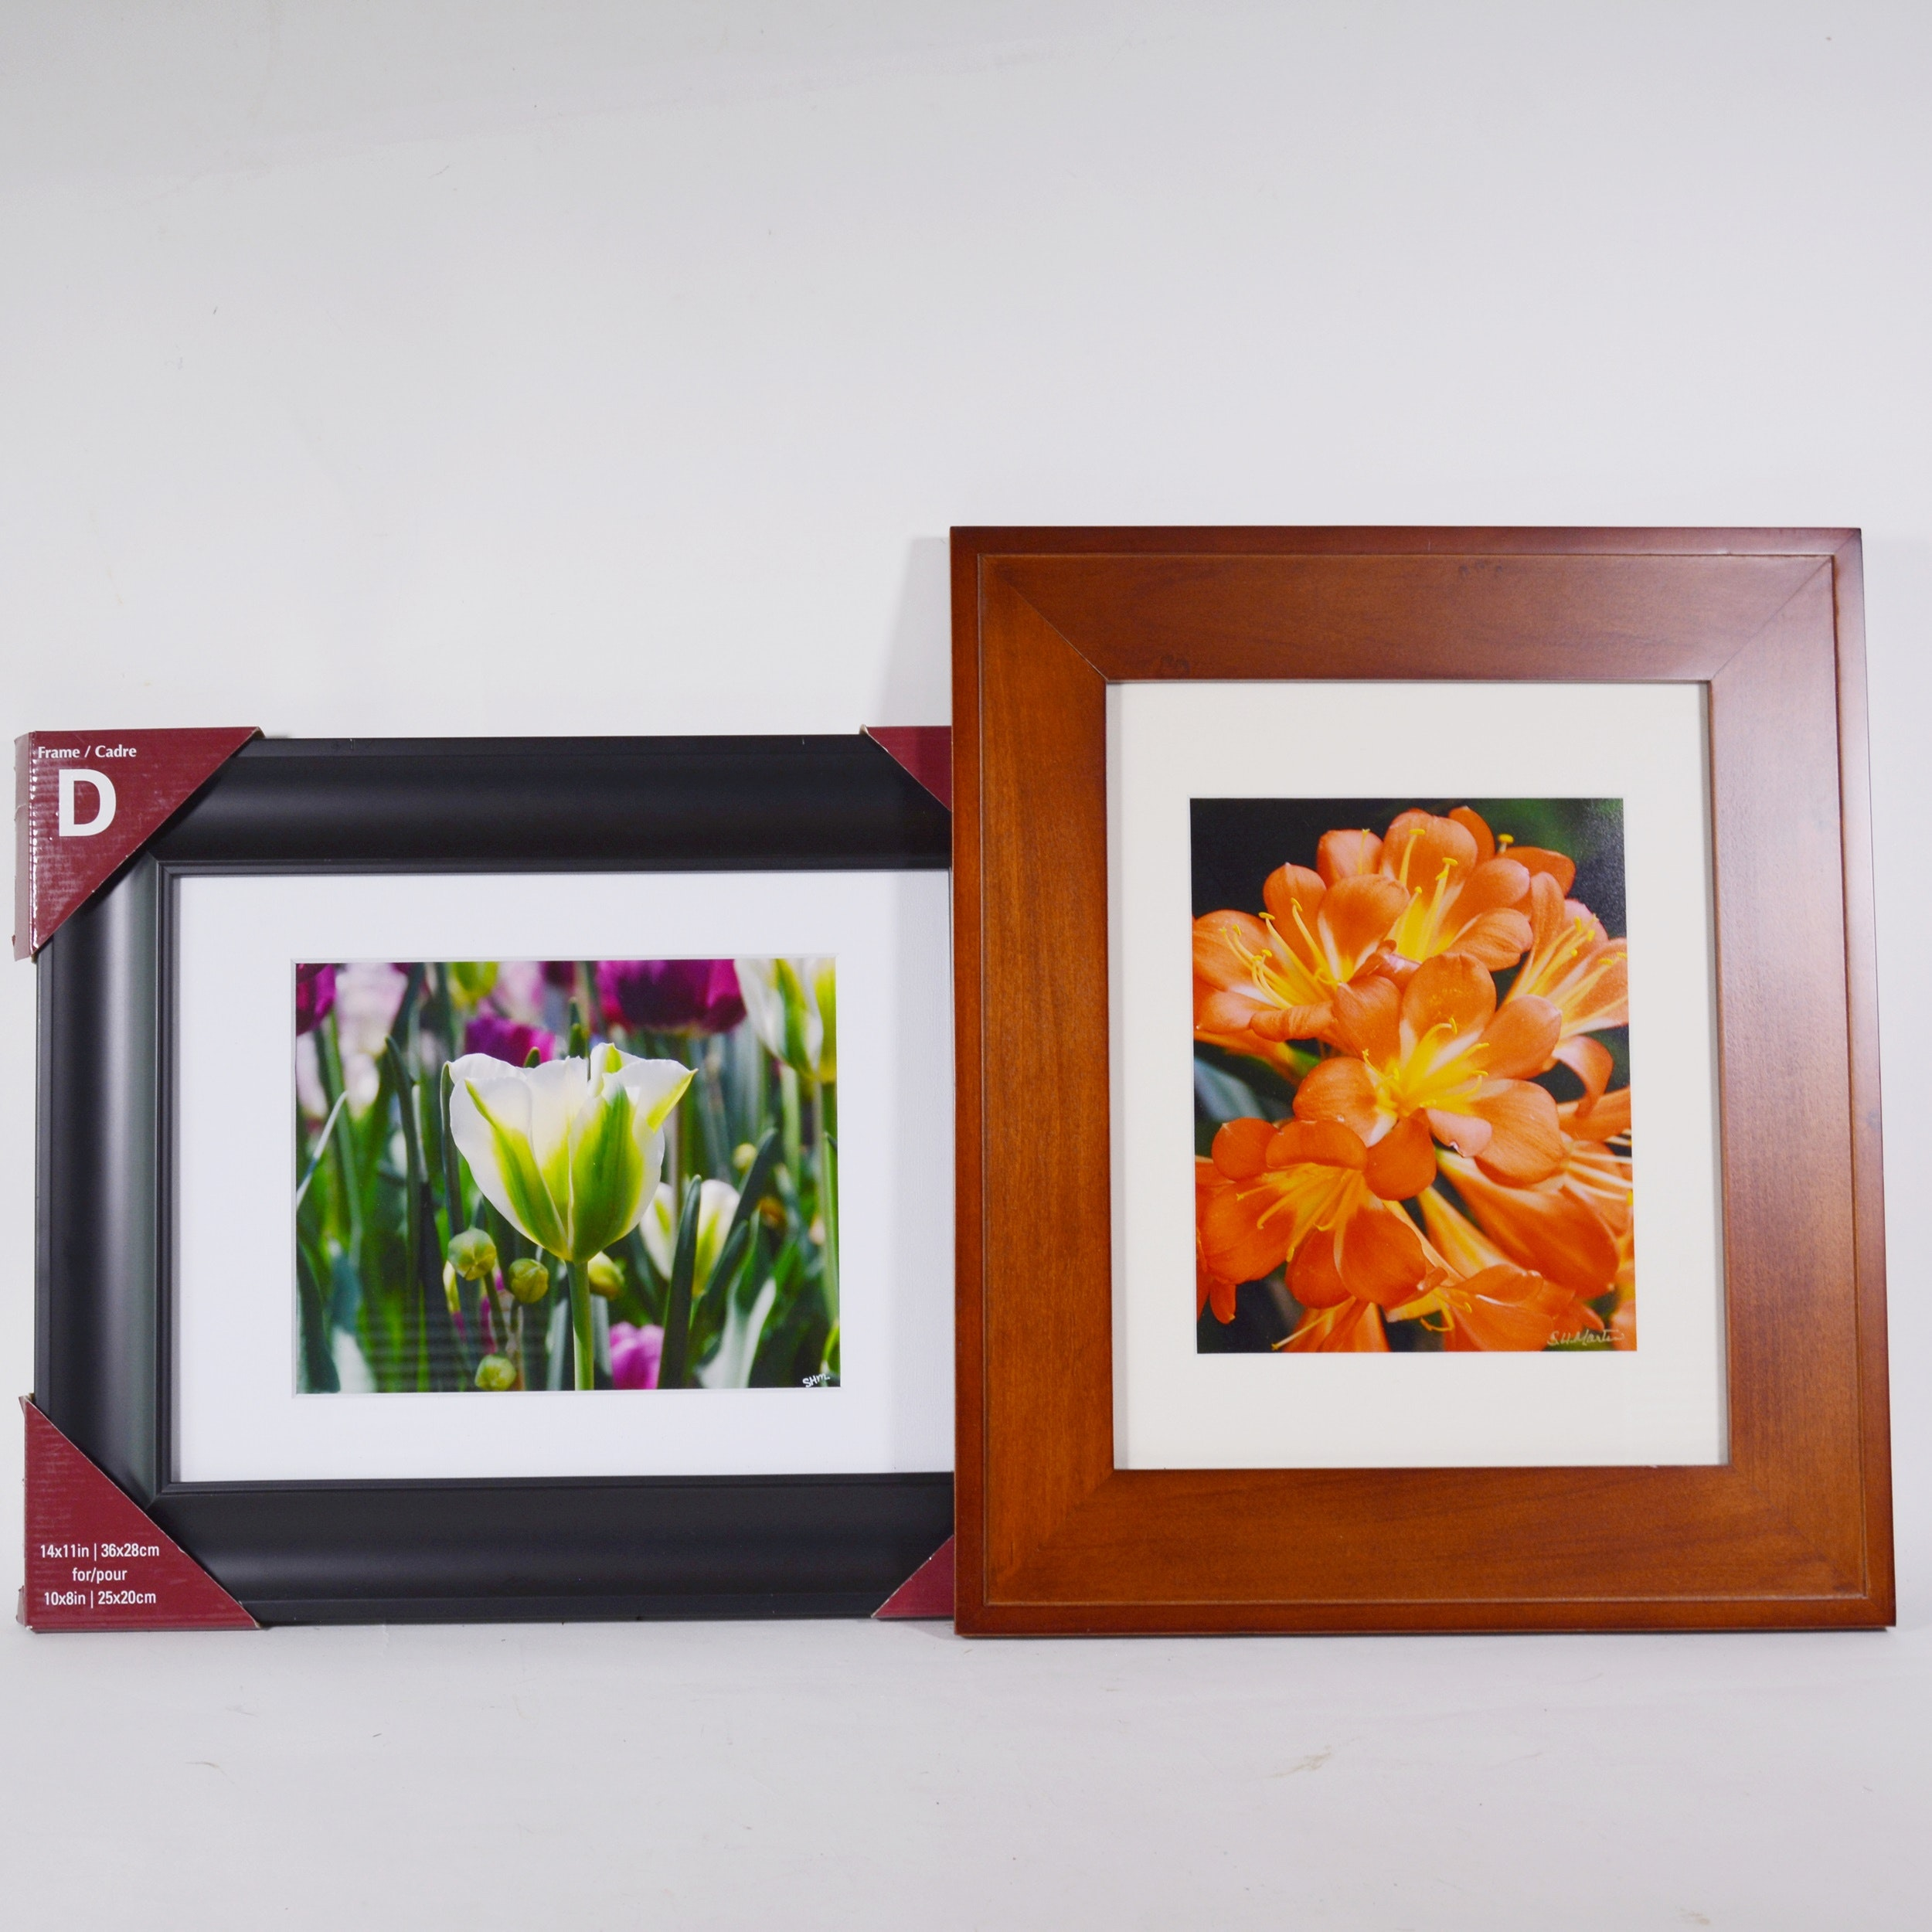 Poppies Photograph and Clivia Photograph After S.H. Martin